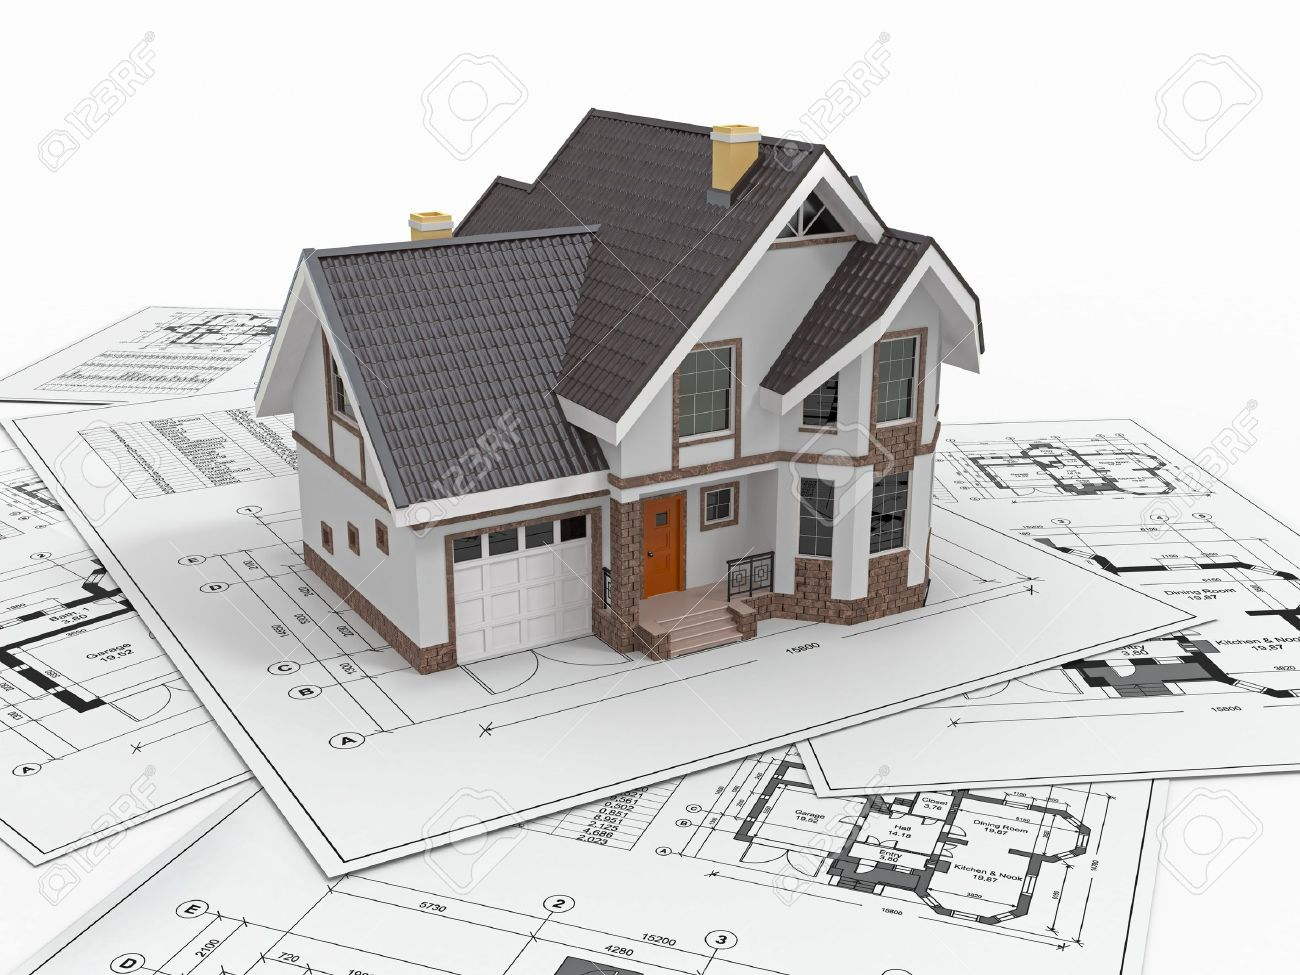 architecture blueprints 3d. Plain Architecture Residential House With Tools On Architect Blueprints Housing Project 3d  Stock Photo  17875690 For Architecture Blueprints R